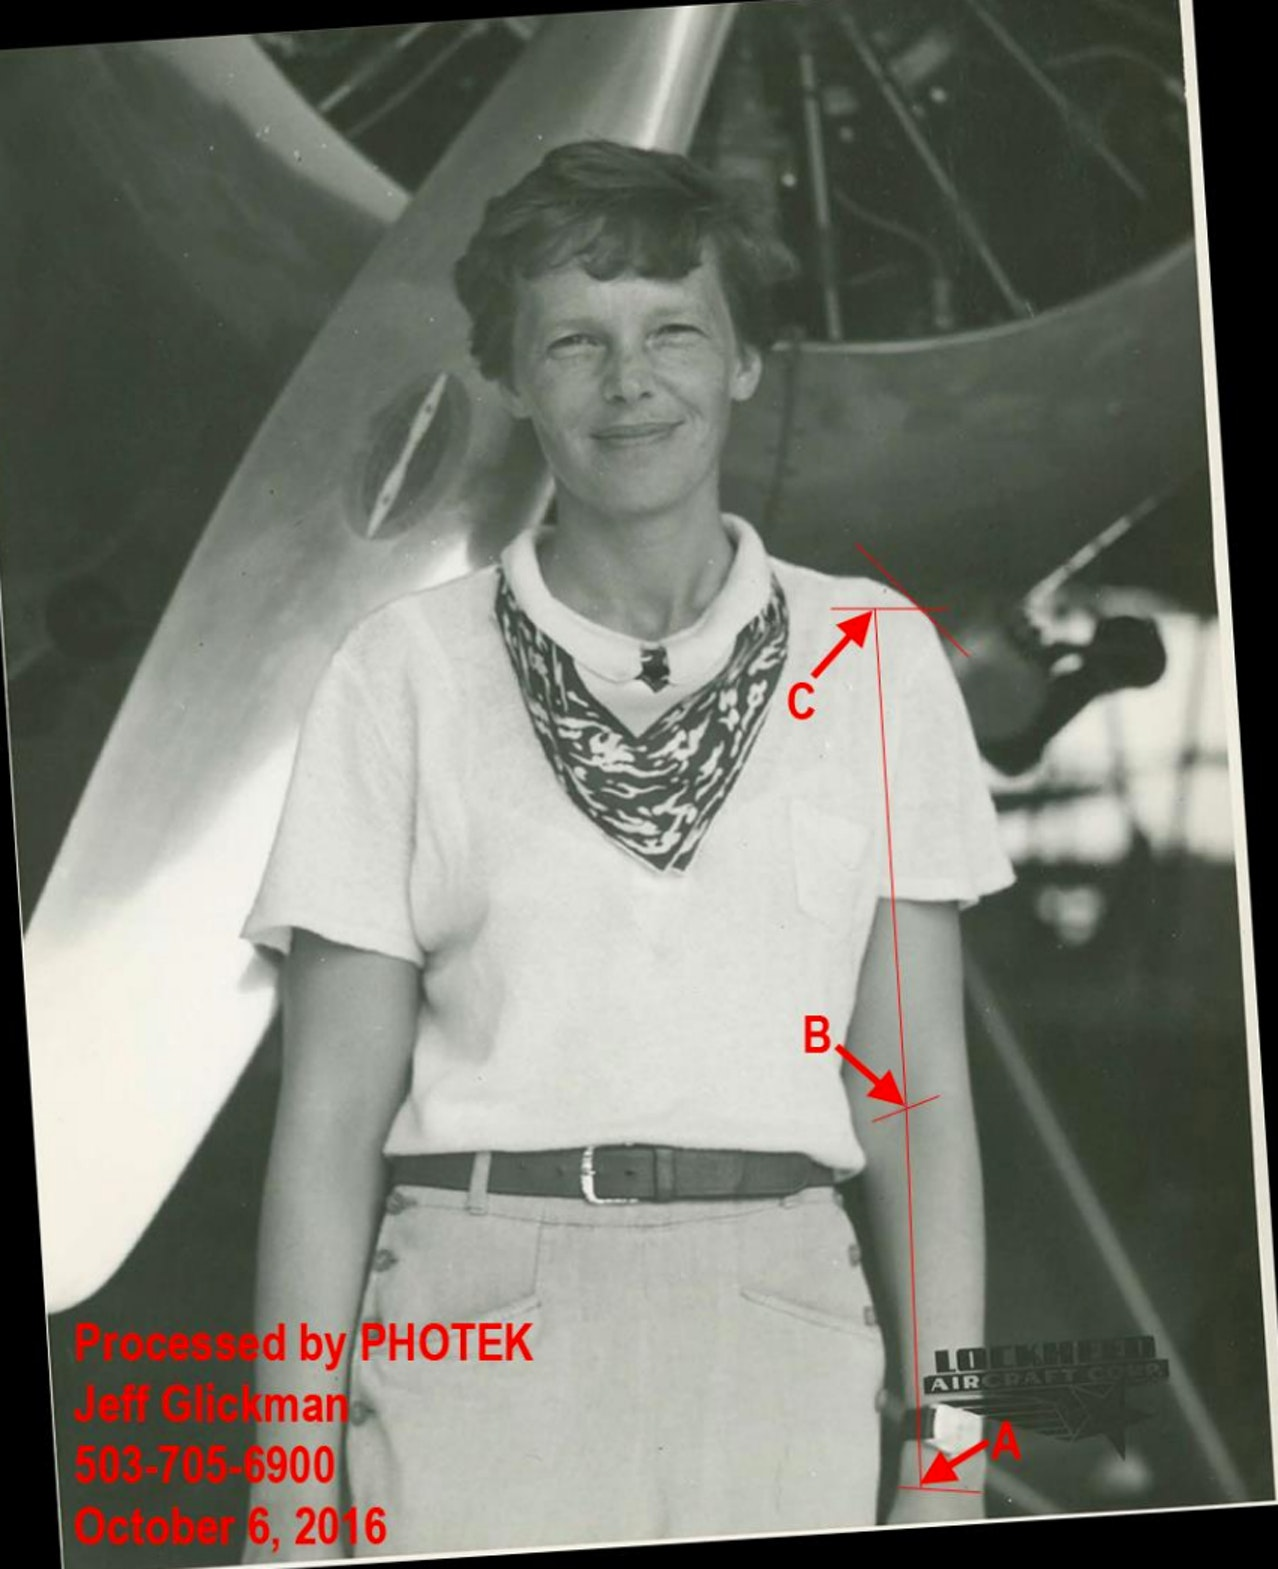 Annotated image of Earhart with analysis landmarks.